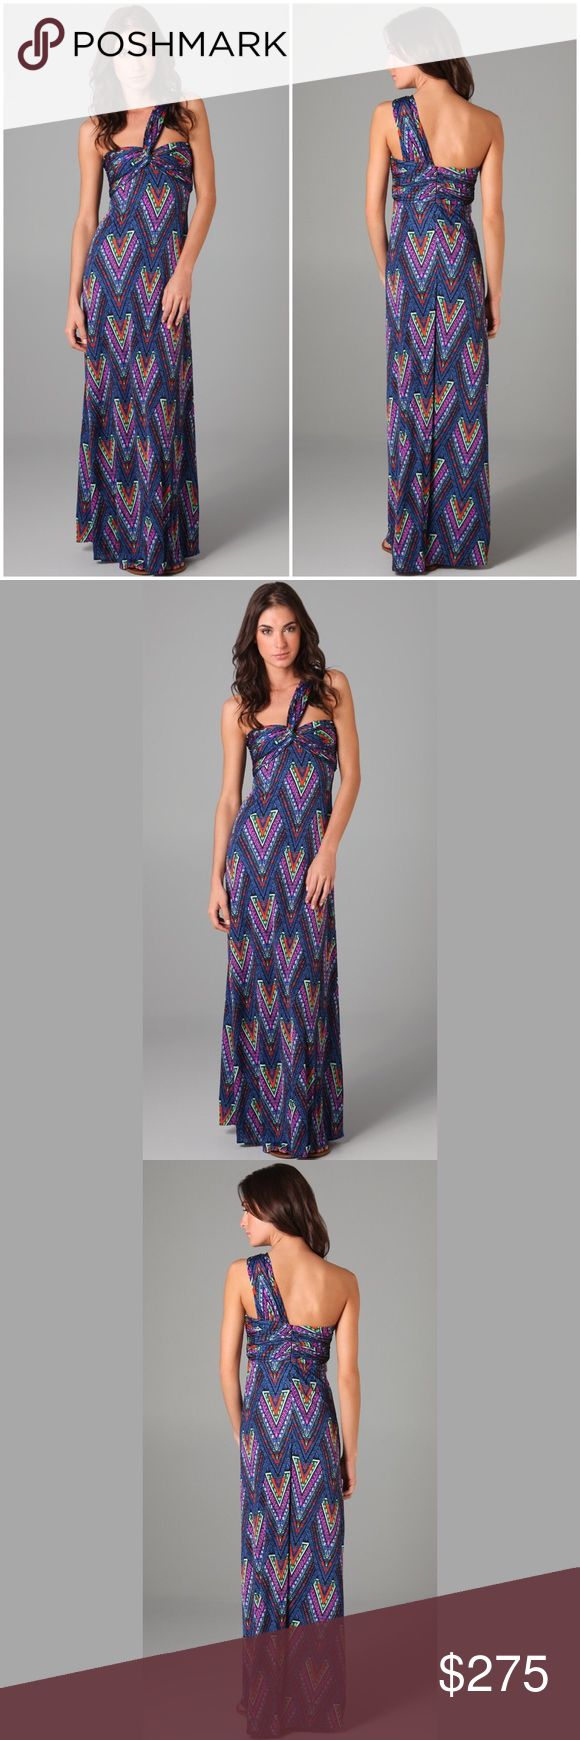 """NWT Mara Hoffman Twist Front Tribal Maxi Dress **RARE** This one-shoulder print silk-jersey maxi dress features a knot detail at the bust and ruching and boning at the lined bodice. Hidden side zip. 4"""" strap.  * 56"""" long, measured from shoulder. * Fabrication: Silk jersey. * 100% silk. * Dry clean. * Made in the USA. Mara Hoffman Dresses Maxi"""